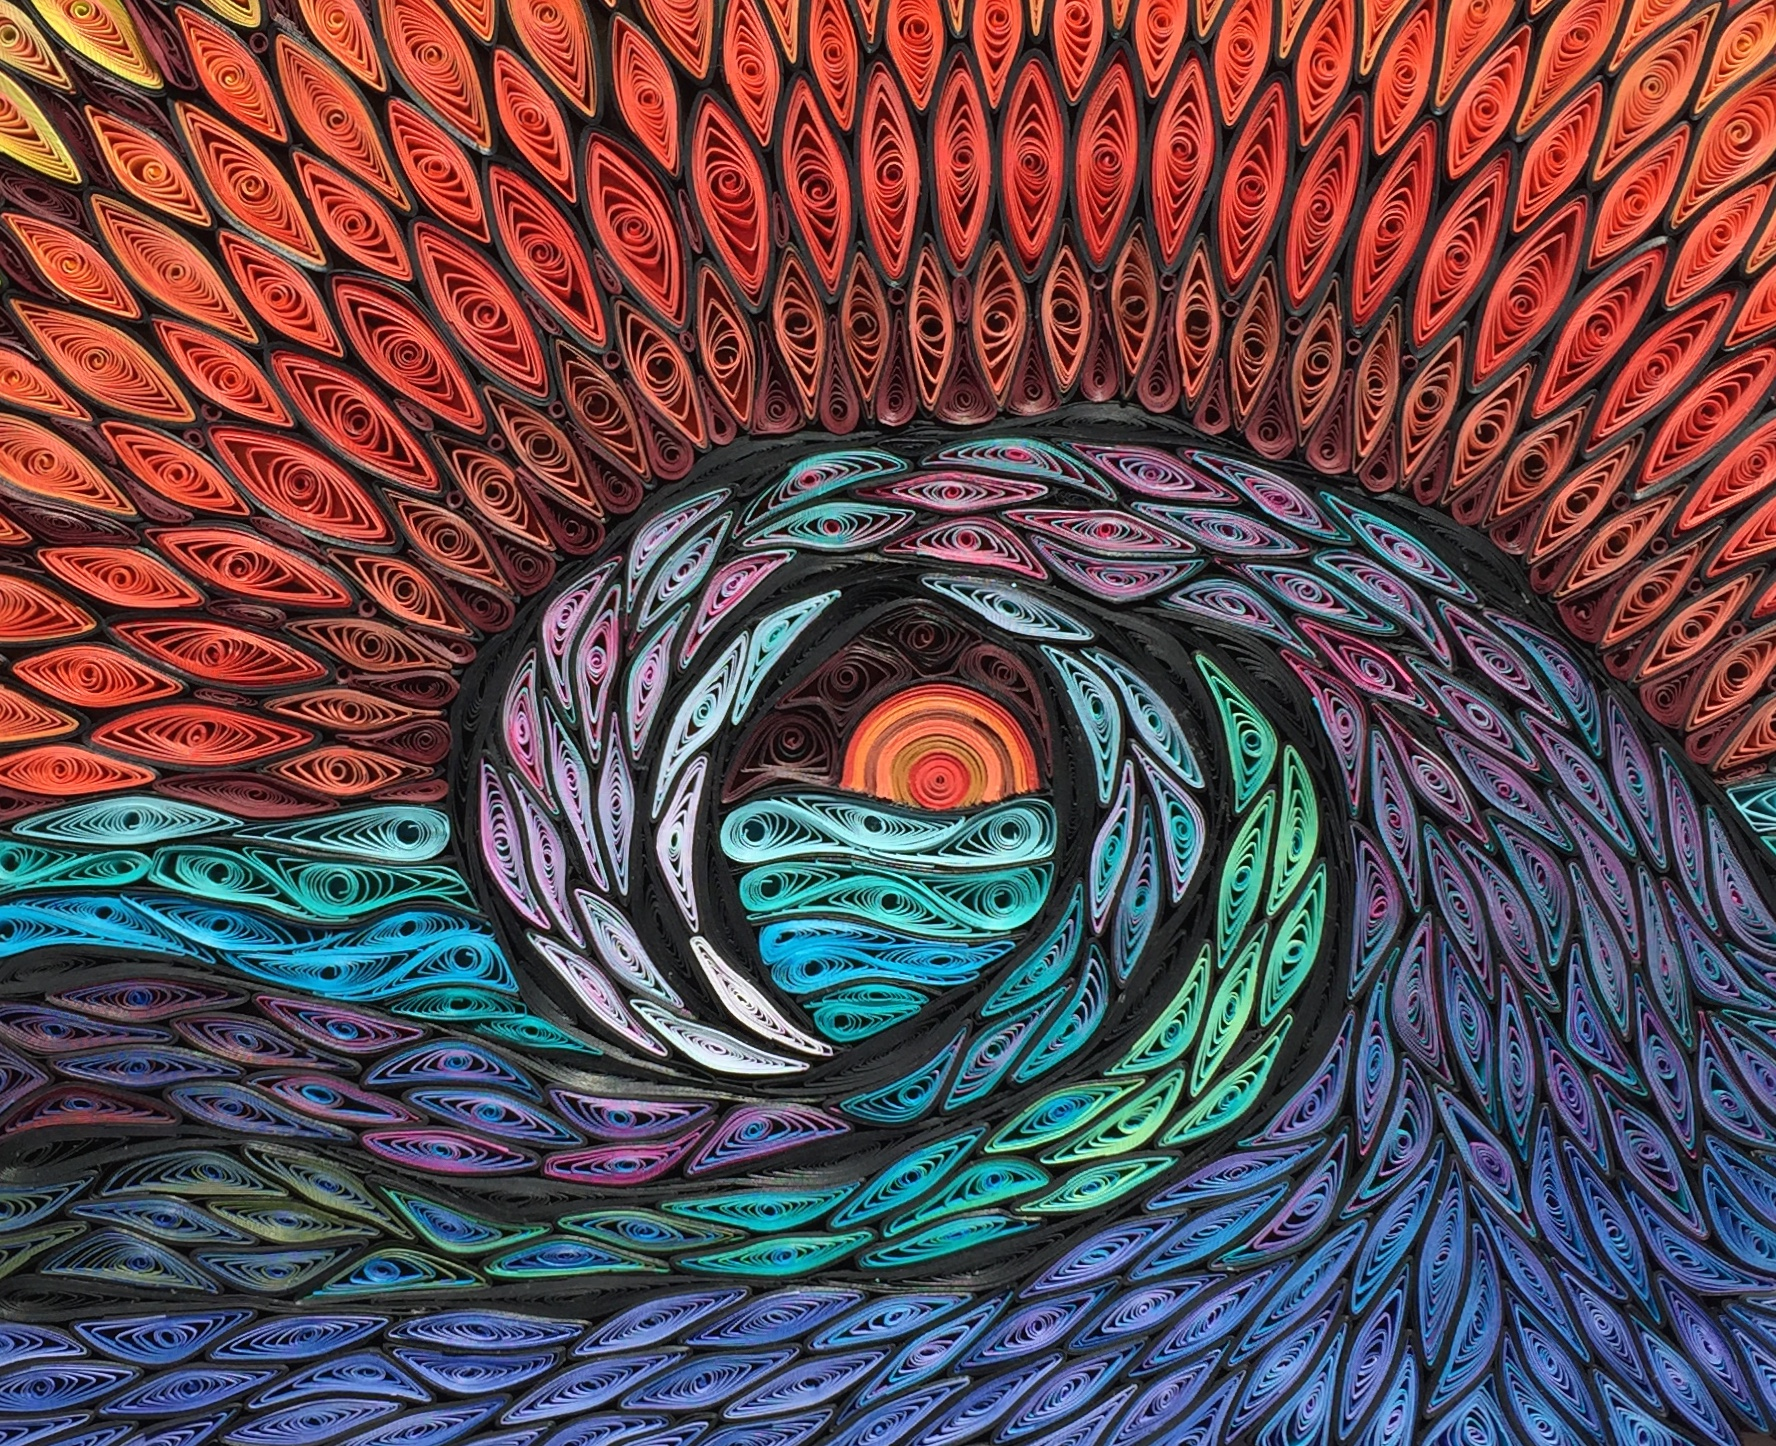 quilled waves mosaic